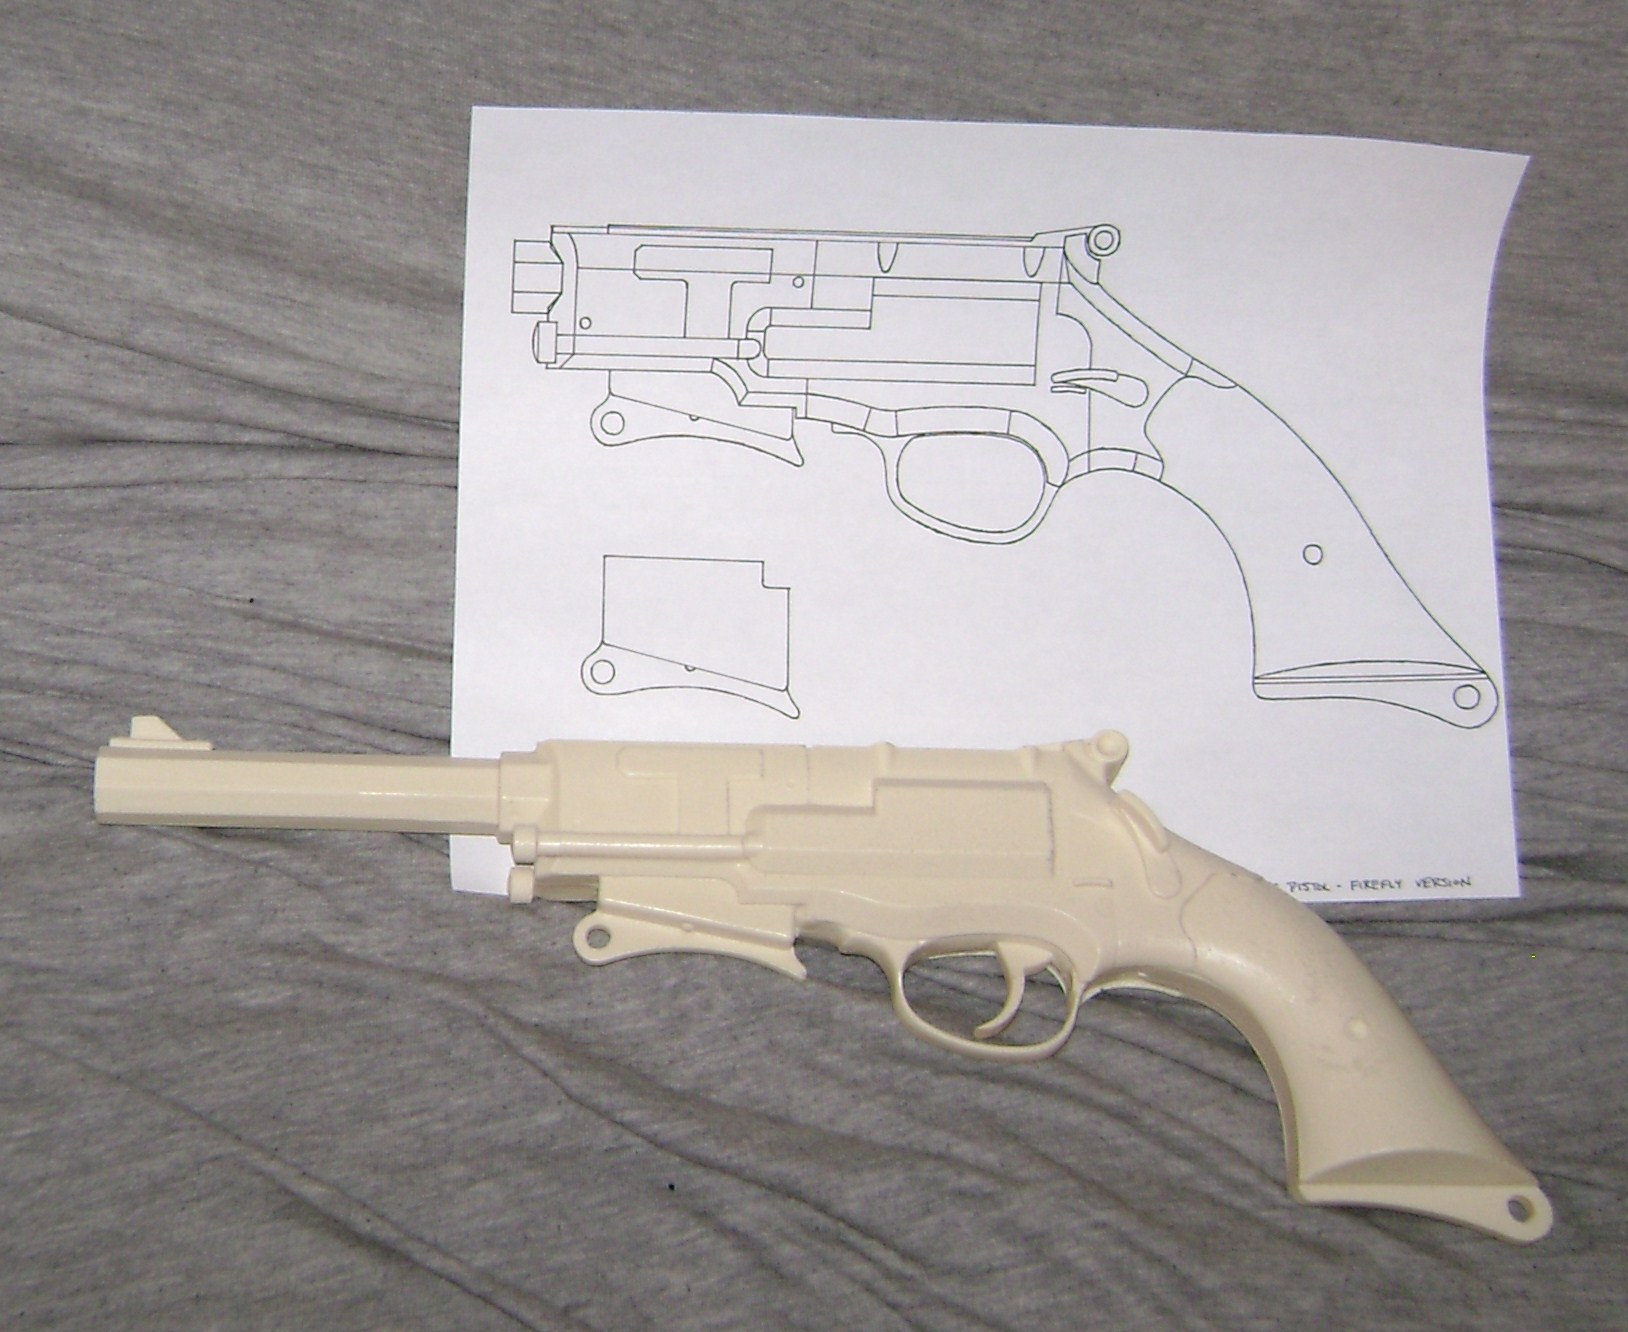 Template for capt malcolm reynolds pistol from firefly halo malcolm reynolds pistol from firefly malvernweather Gallery